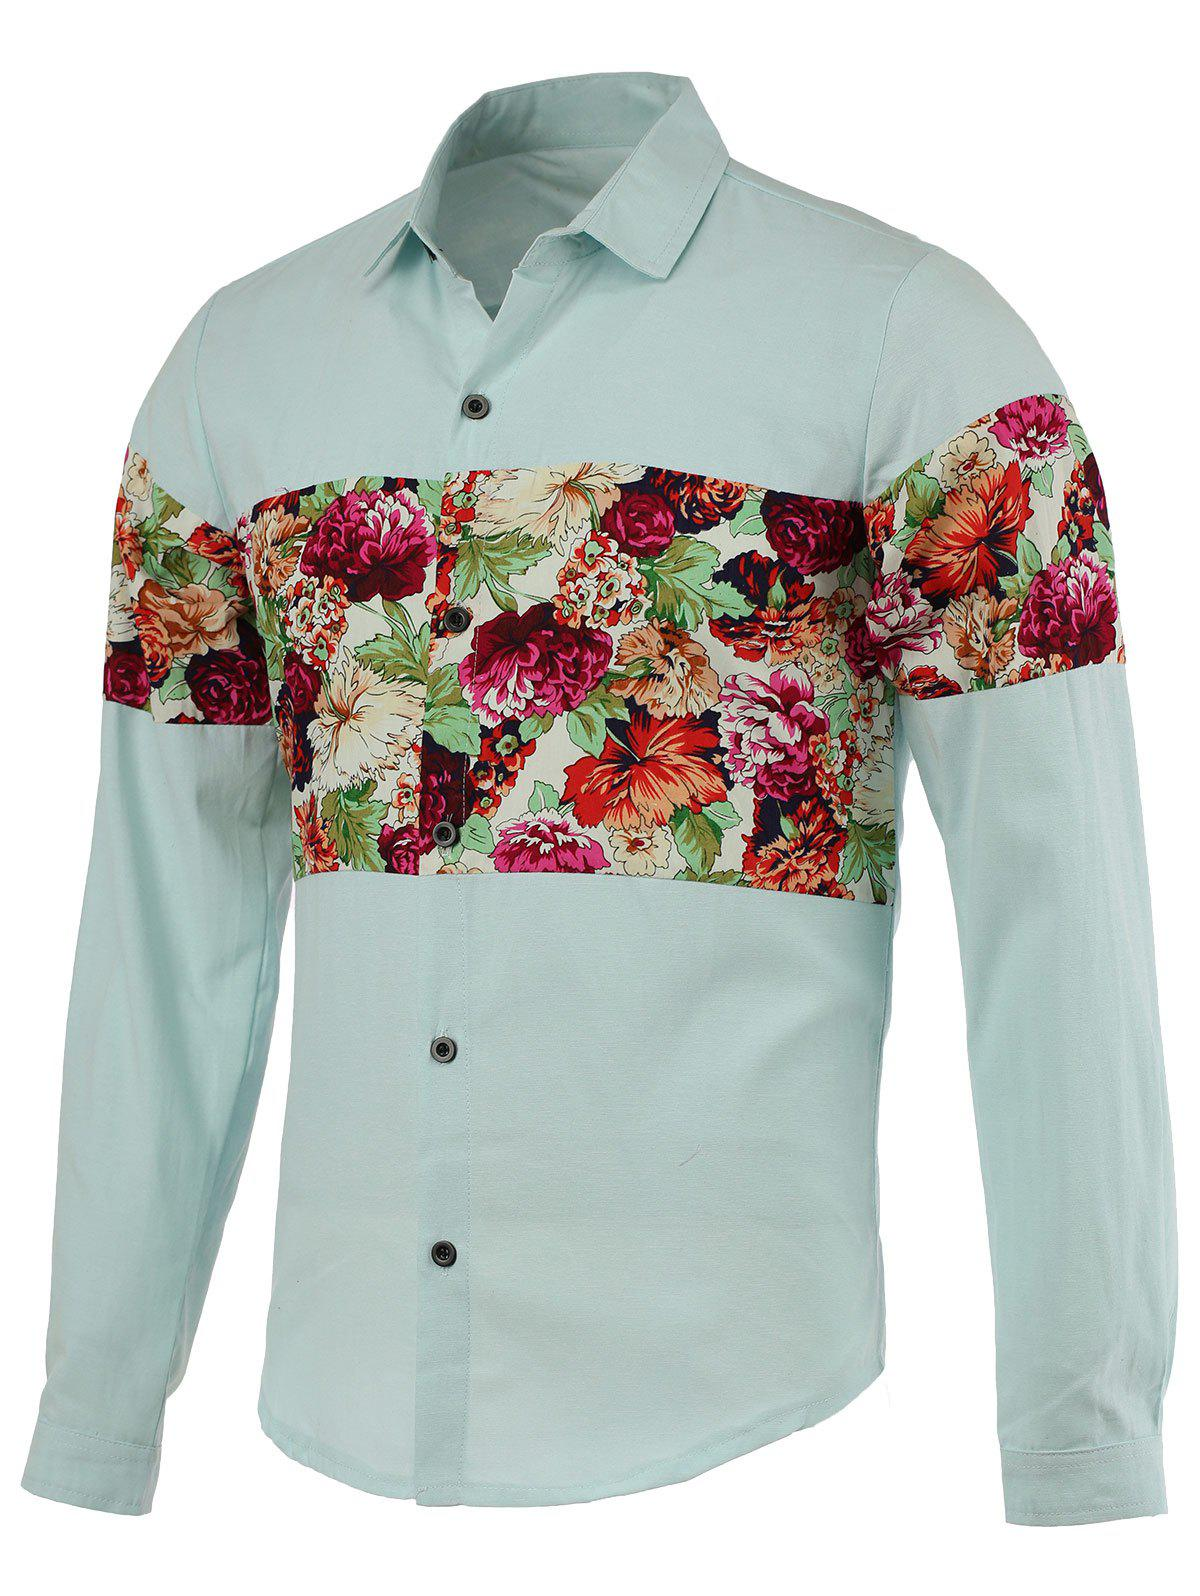 Turn-Down Collar Flowers Printed Splicing Design Long Sleeve Men's Shirt